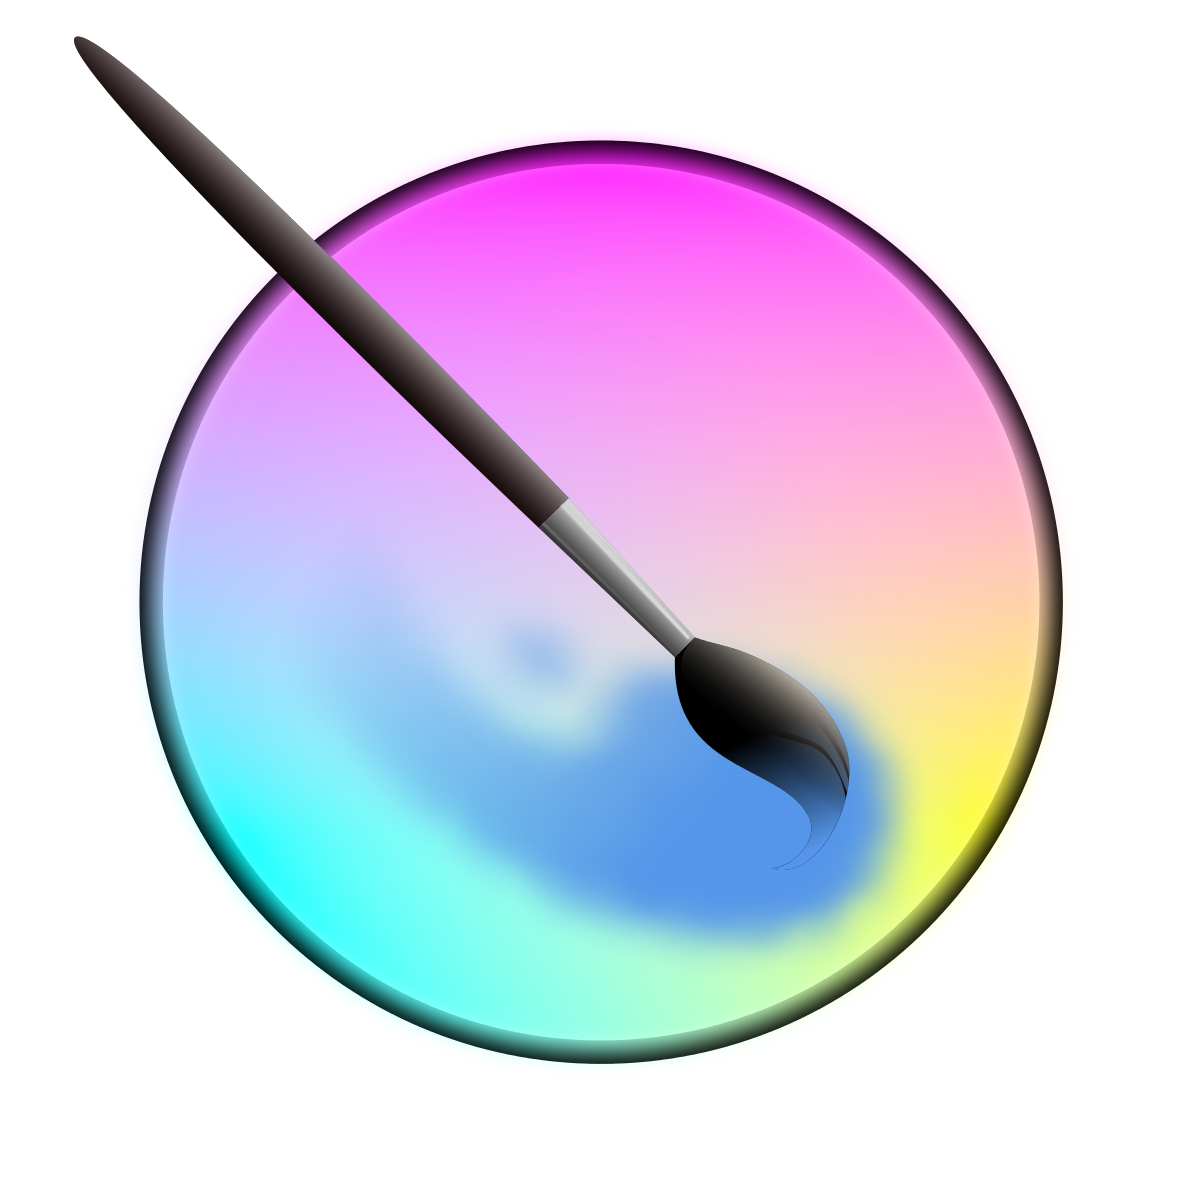 TIL of Krita a free and open-source alternative to Photoshop and Illustrator that surprisingly isn't GIMP | Krita, Best animation software, Cool animations